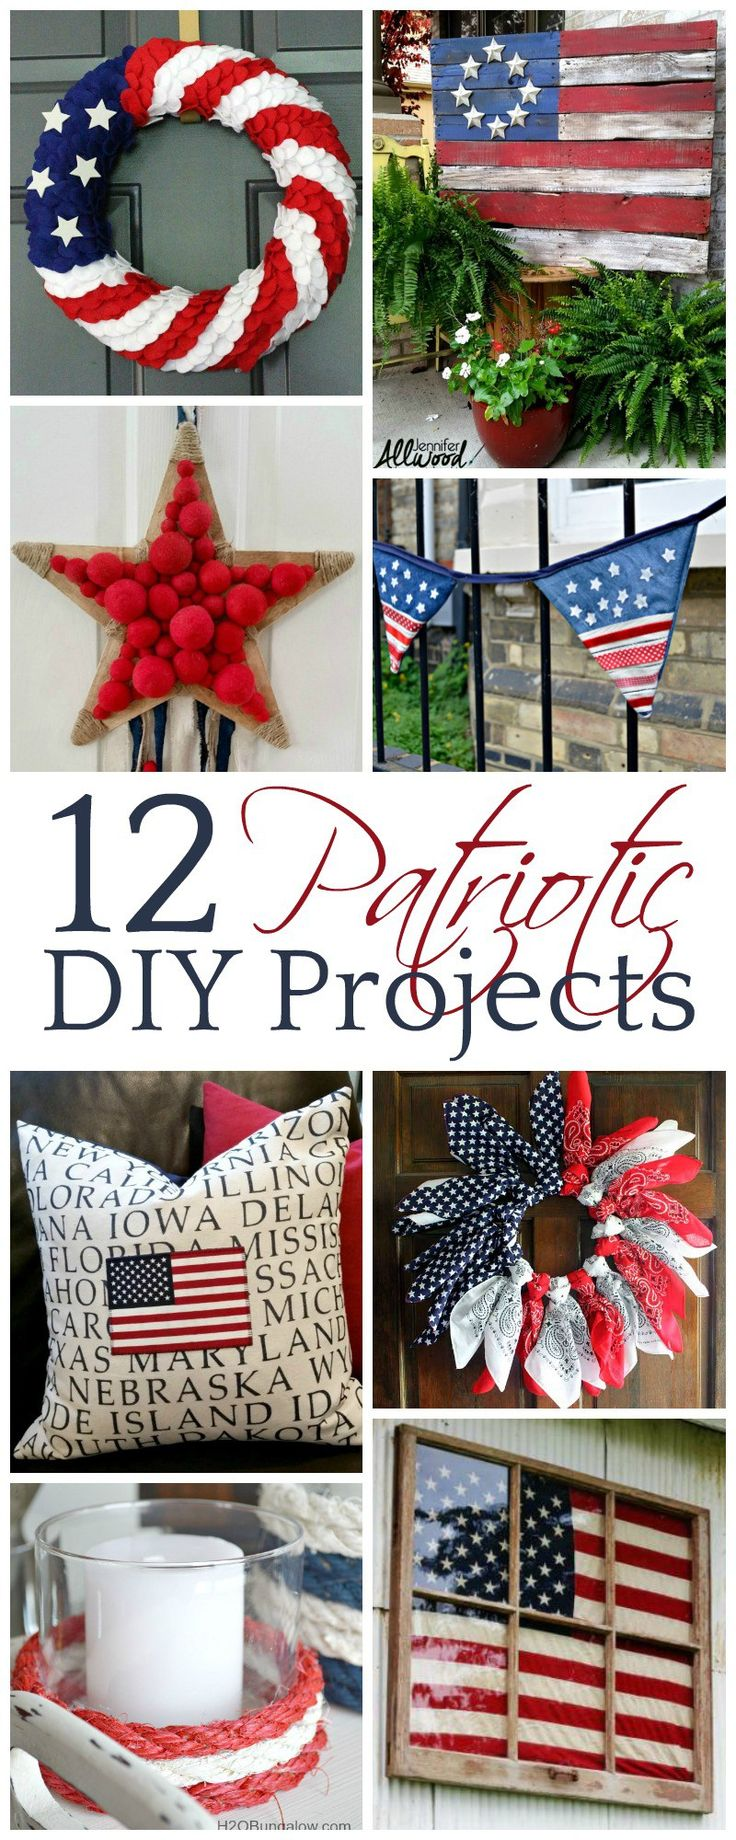 25 Best Ideas About Diy Projects On Pinterest Diy House